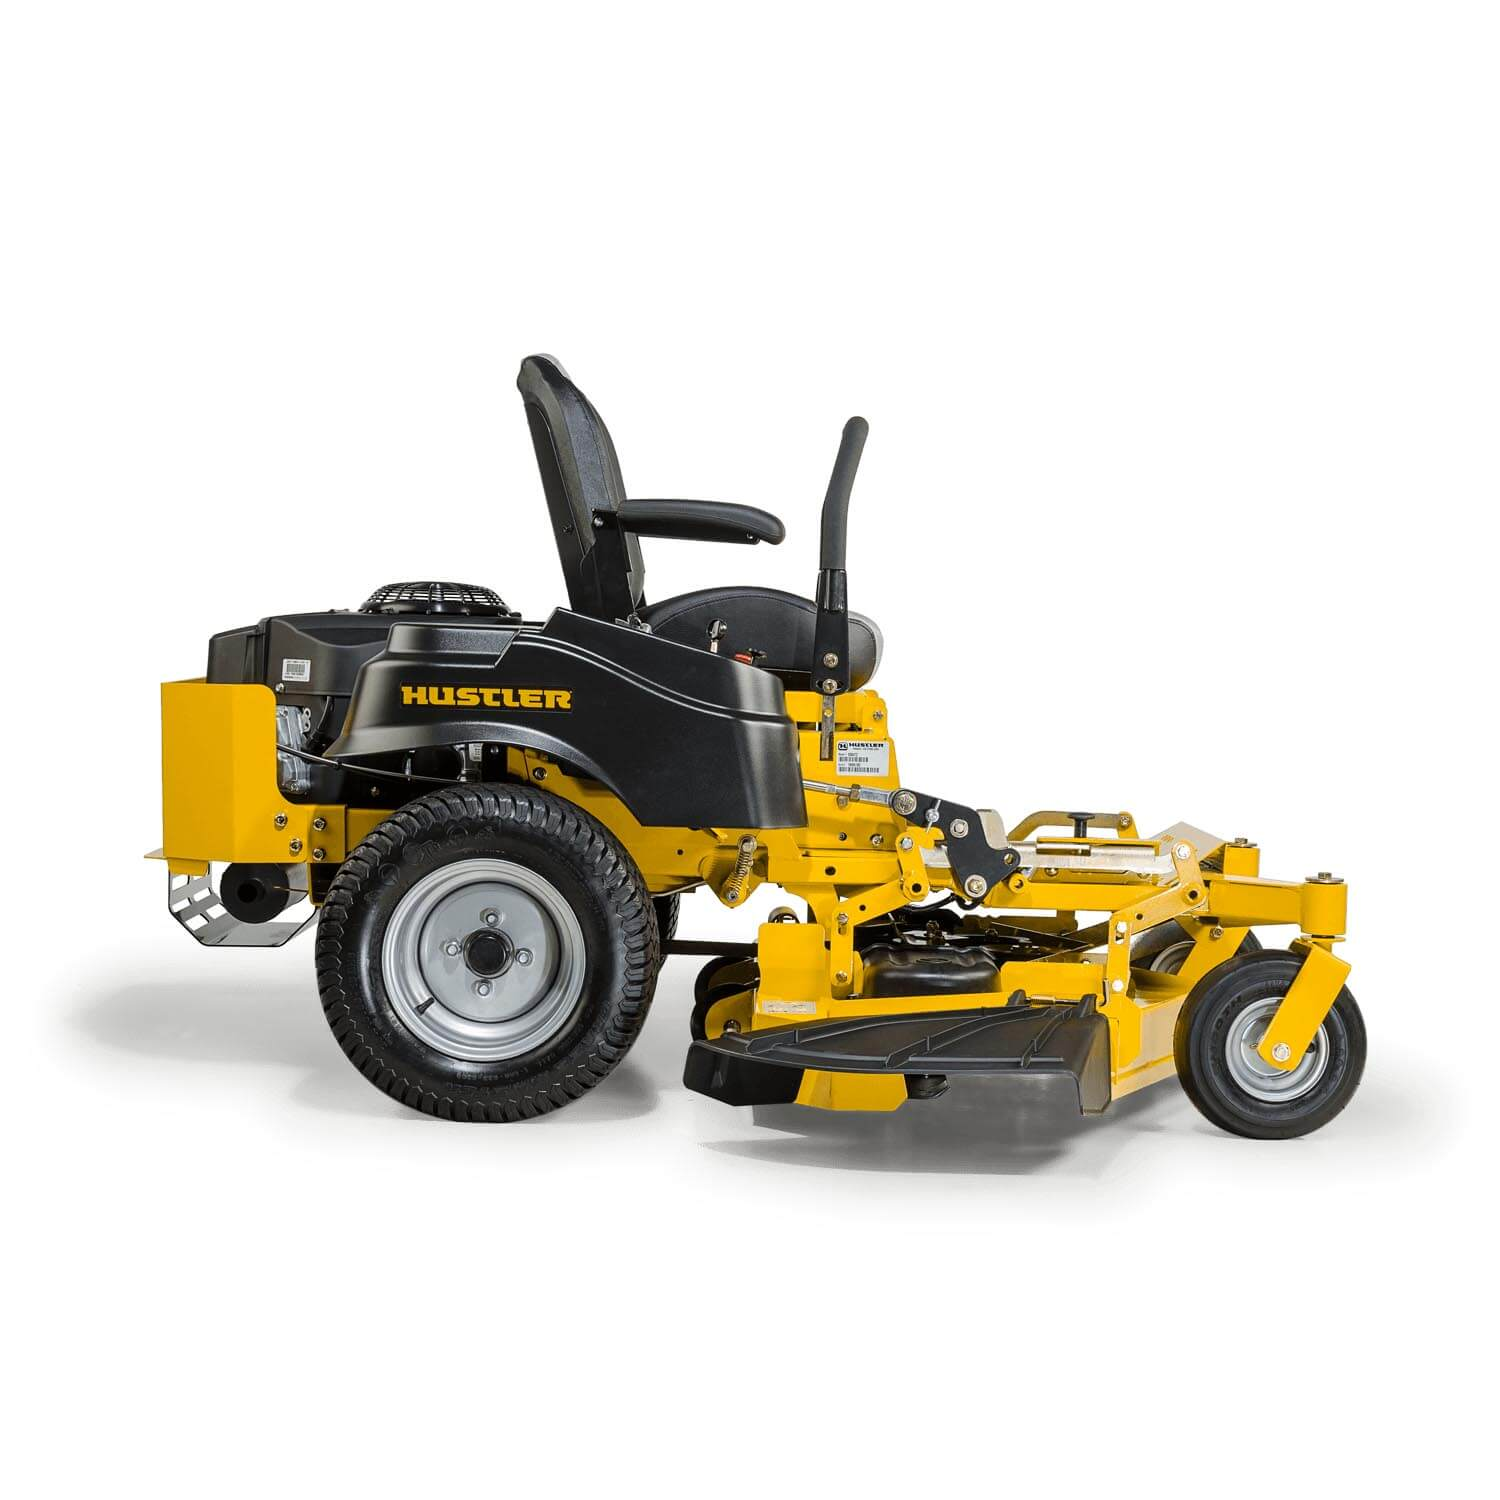 Image of the profile of a yellow riding mower